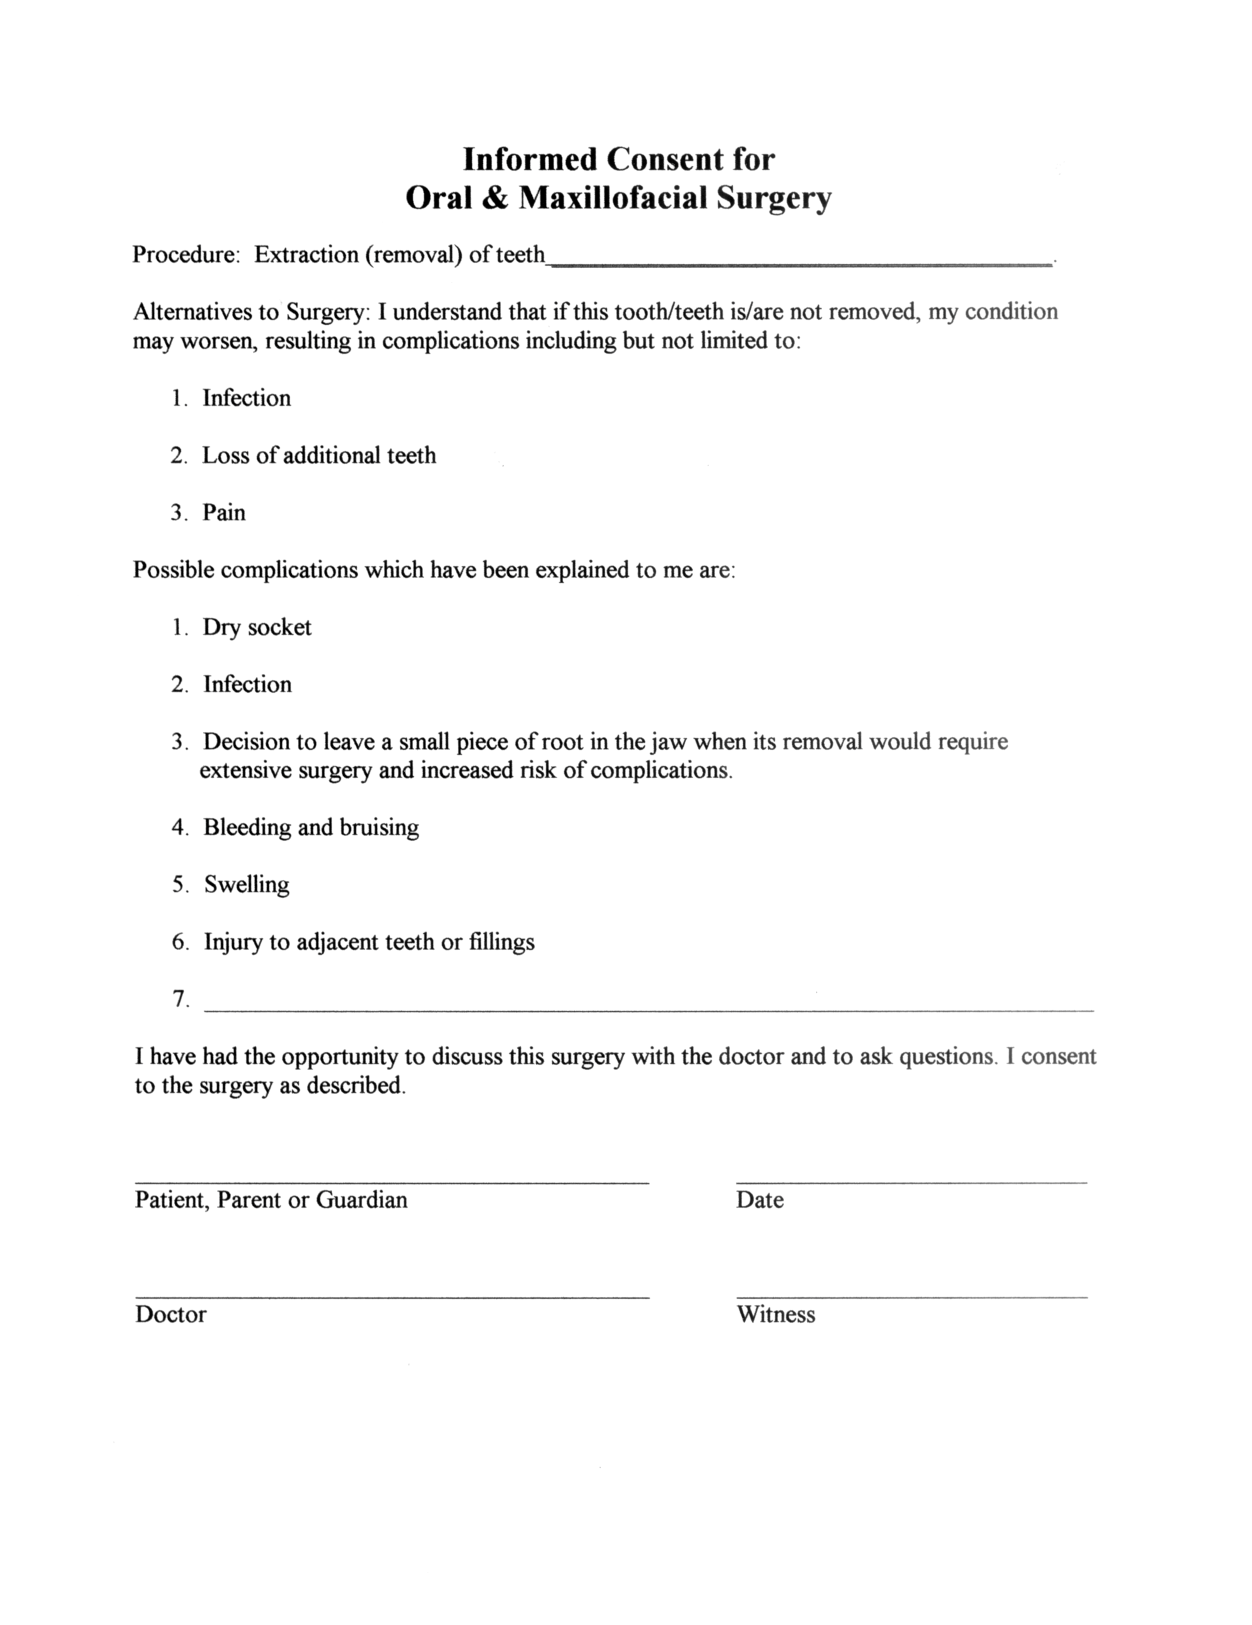 Surgery Informed Consent Form Template | Consent form | Pinterest ...